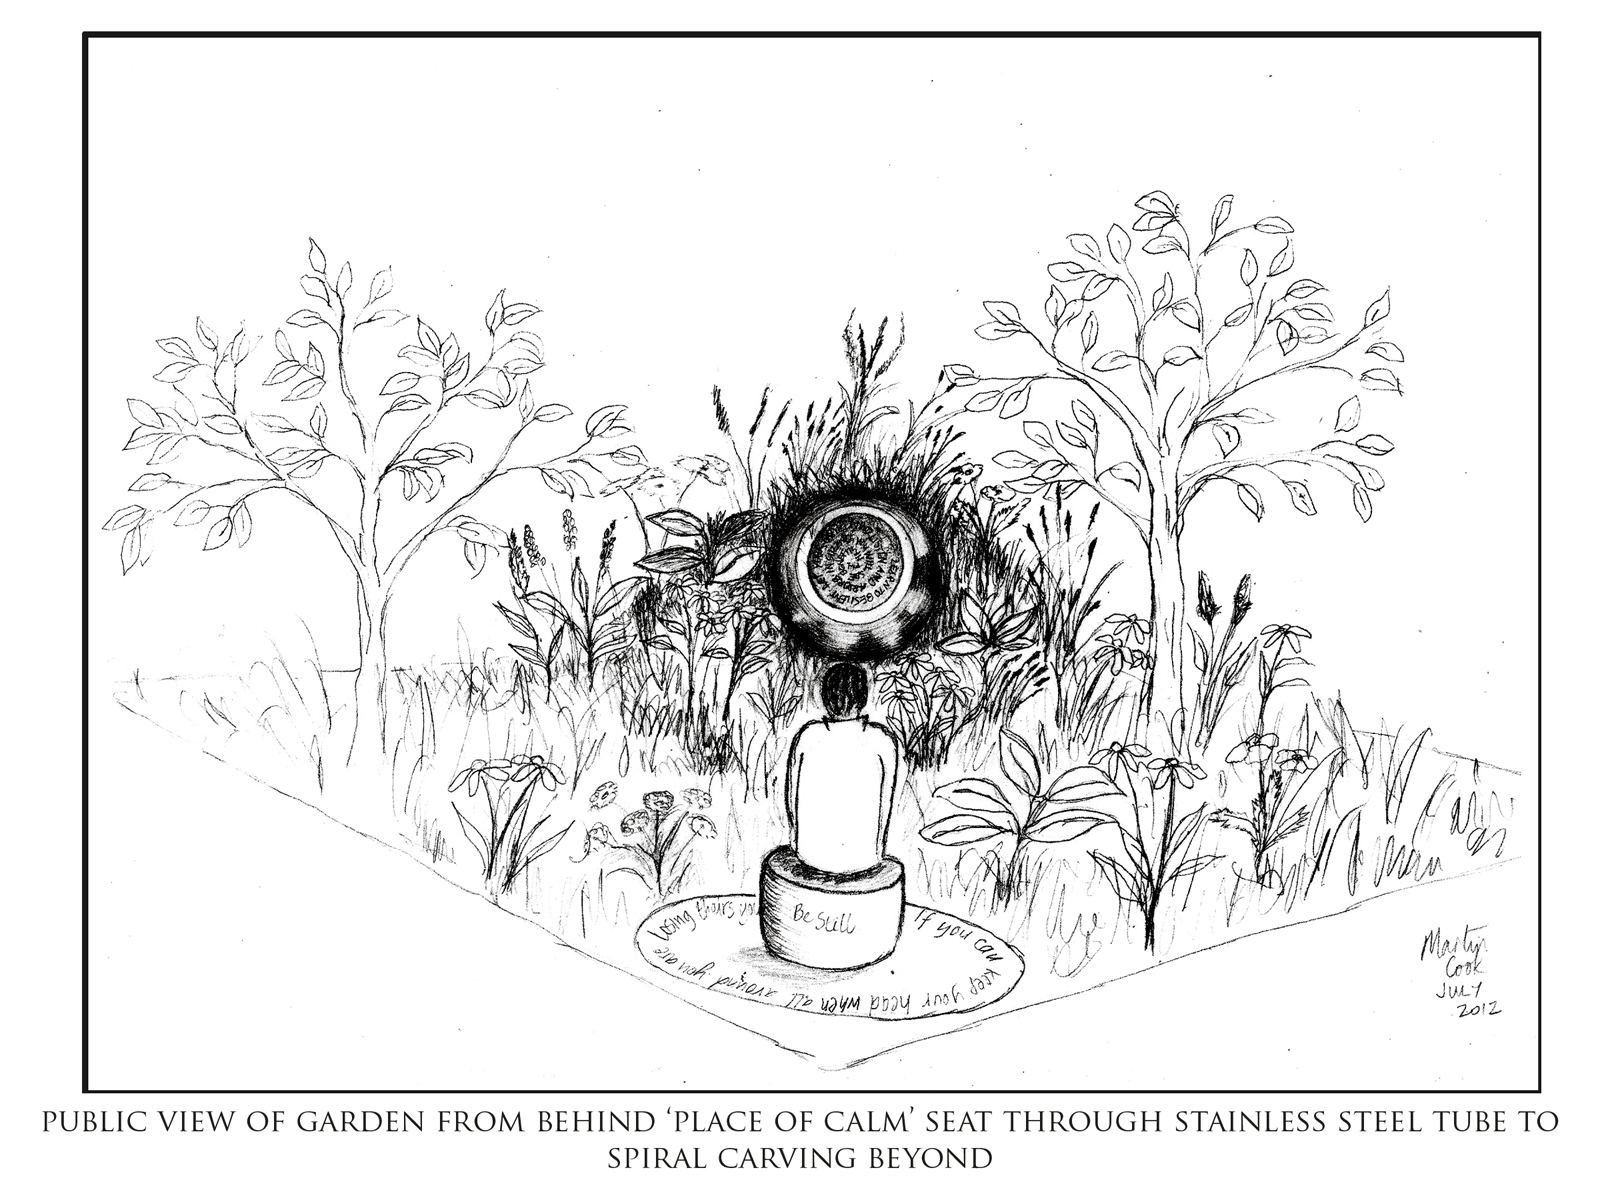 Martin Cooks artist impression of the Mindfulness Garden for Chelsea Flower Show 2013